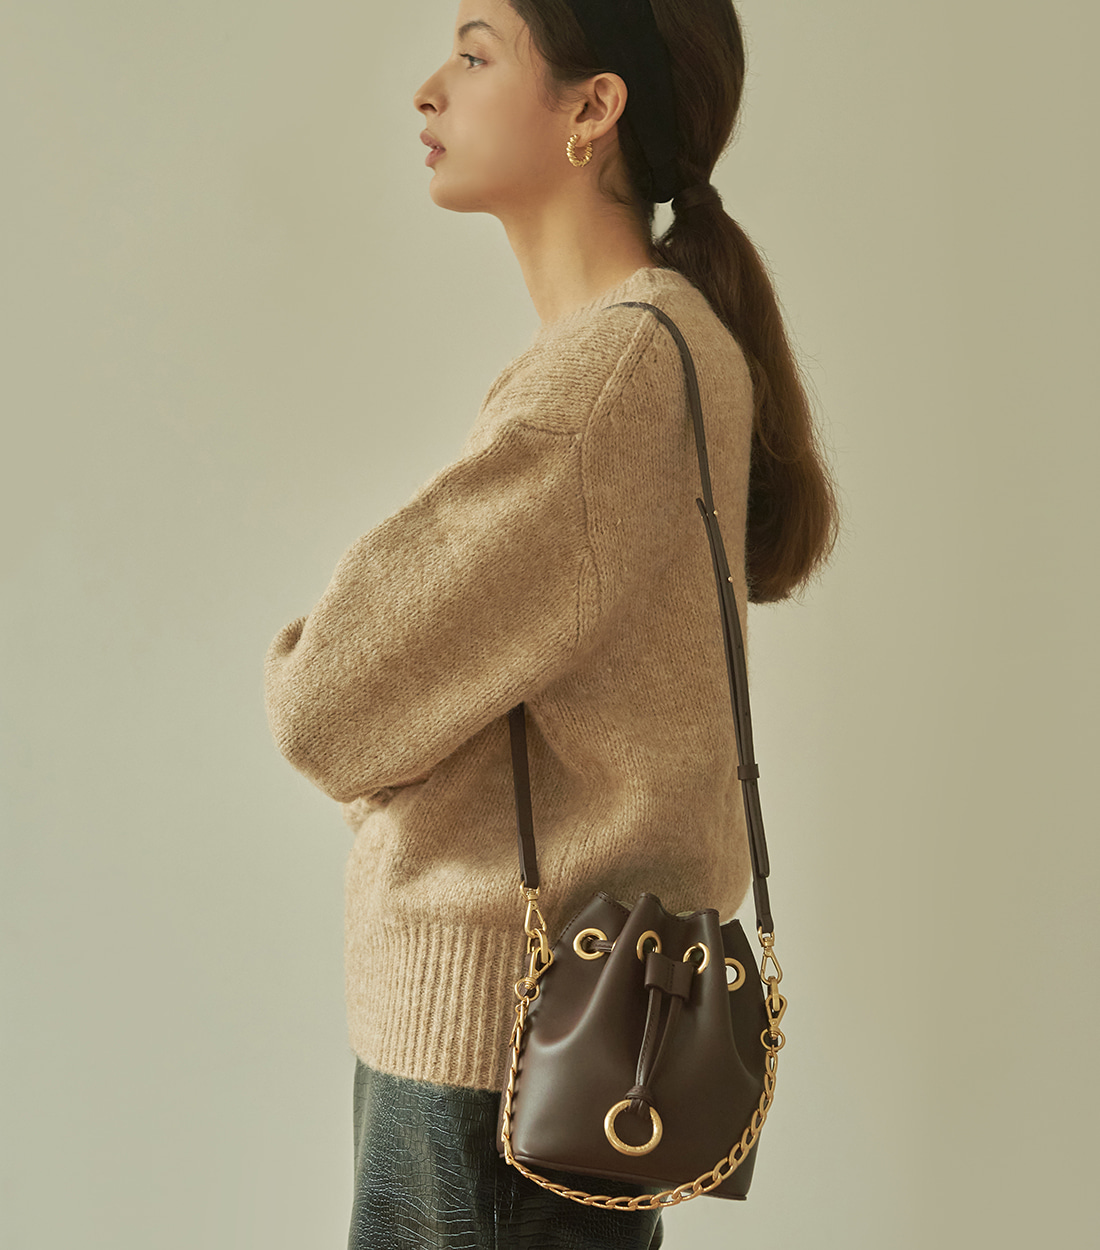 jane bag mini - brown [refurb 50%]